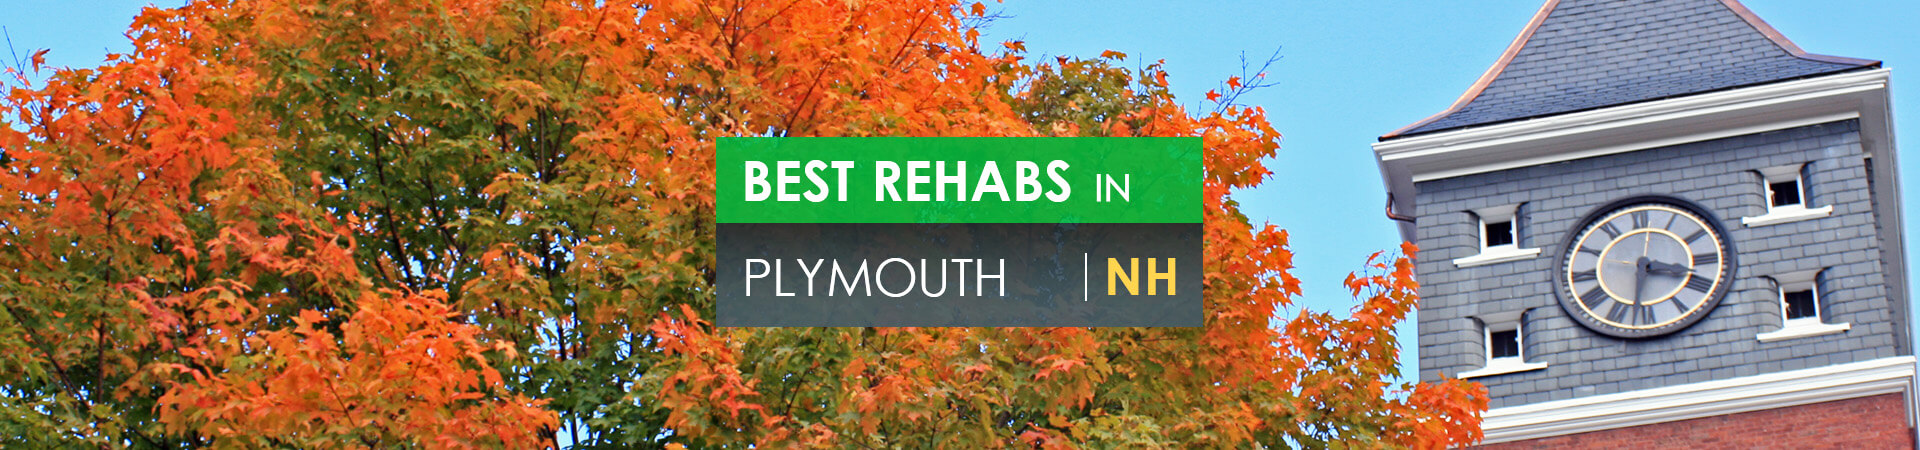 Best rehabs in Plymouth, NH